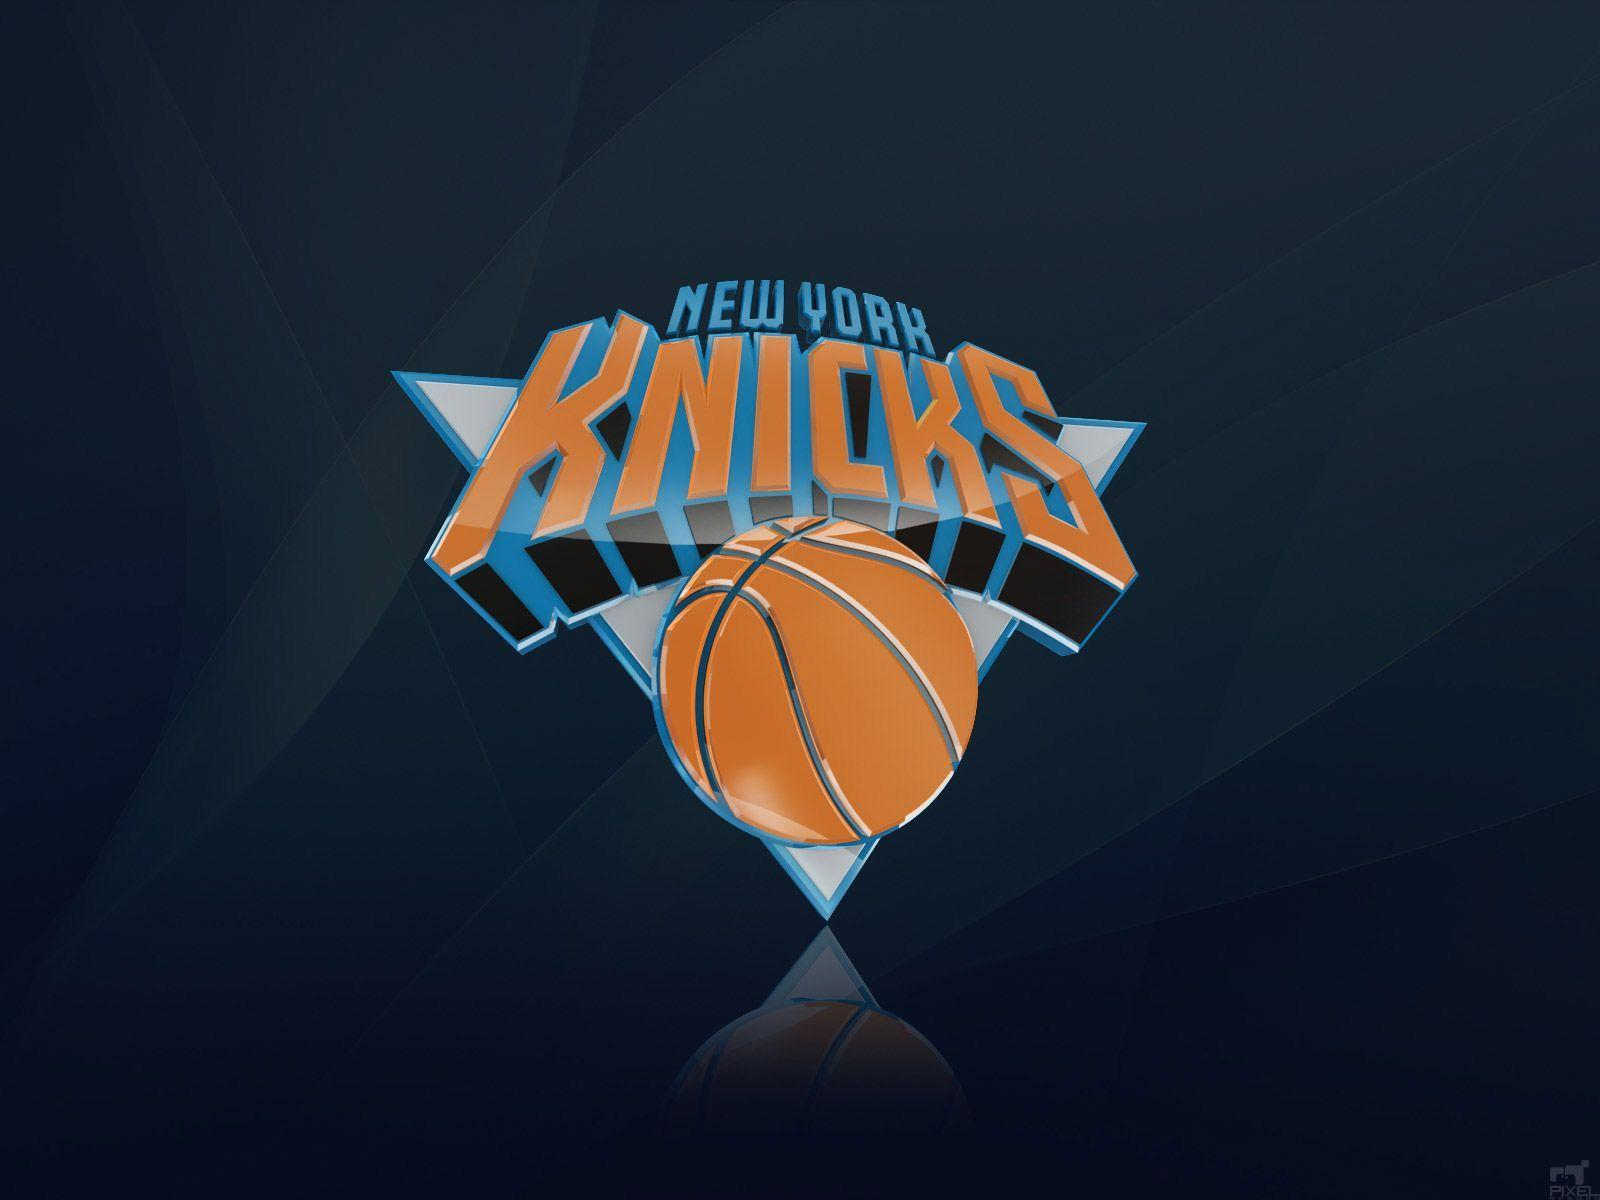 New York Knicks Wallpapers at BasketWallpapers